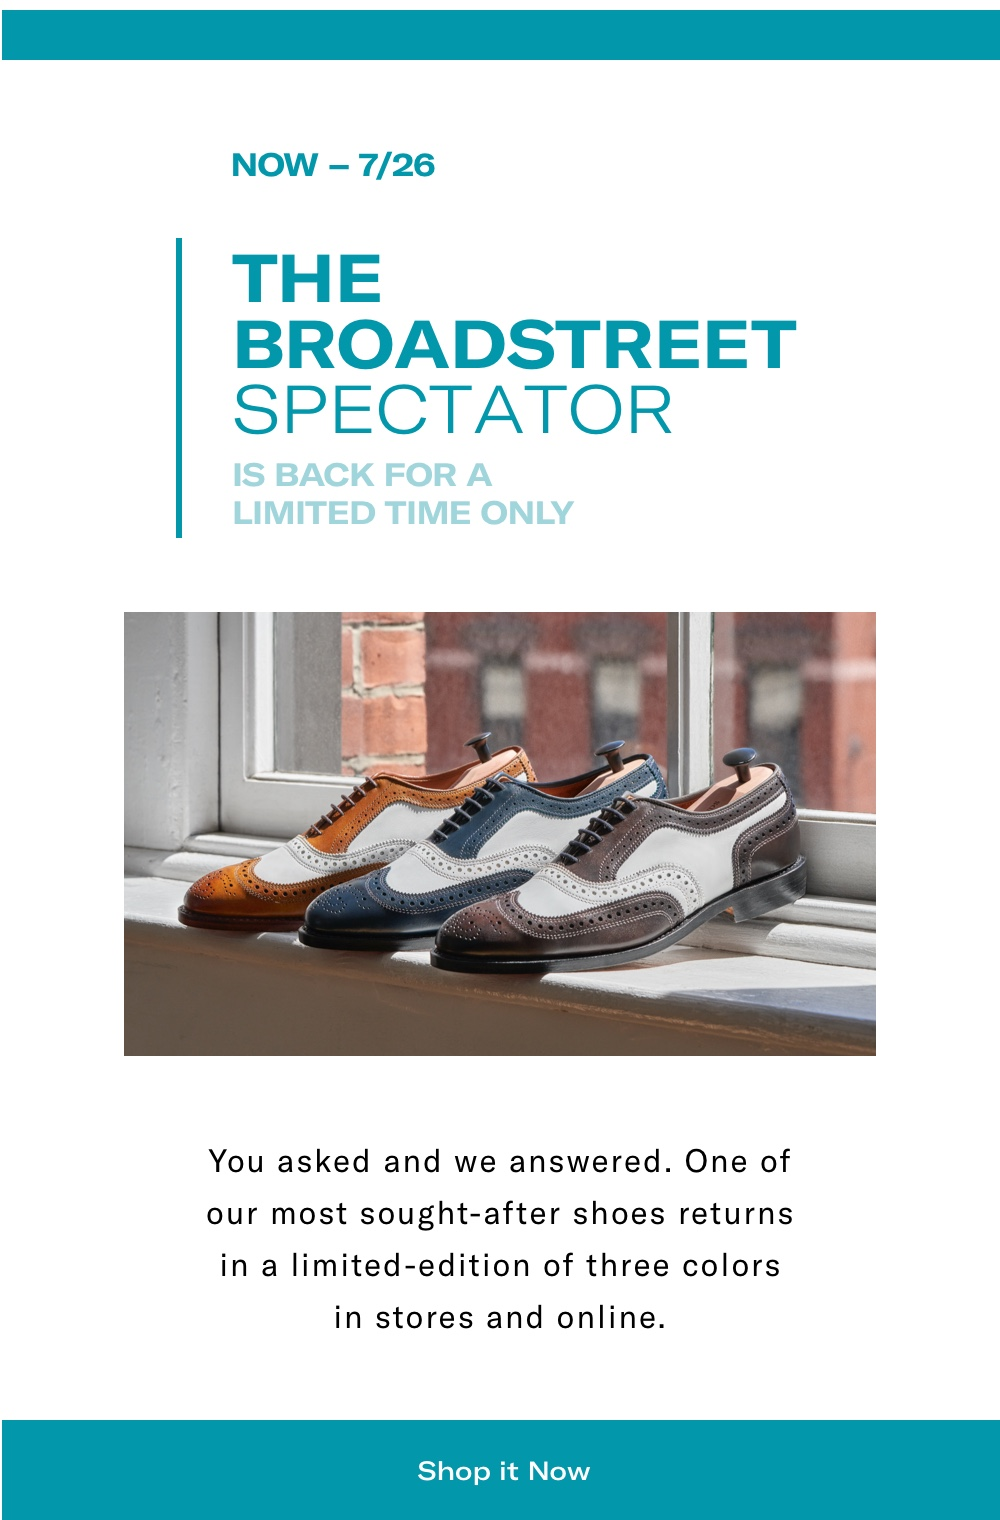 The Broadstreet Spectators - Back for a Limited Time Only